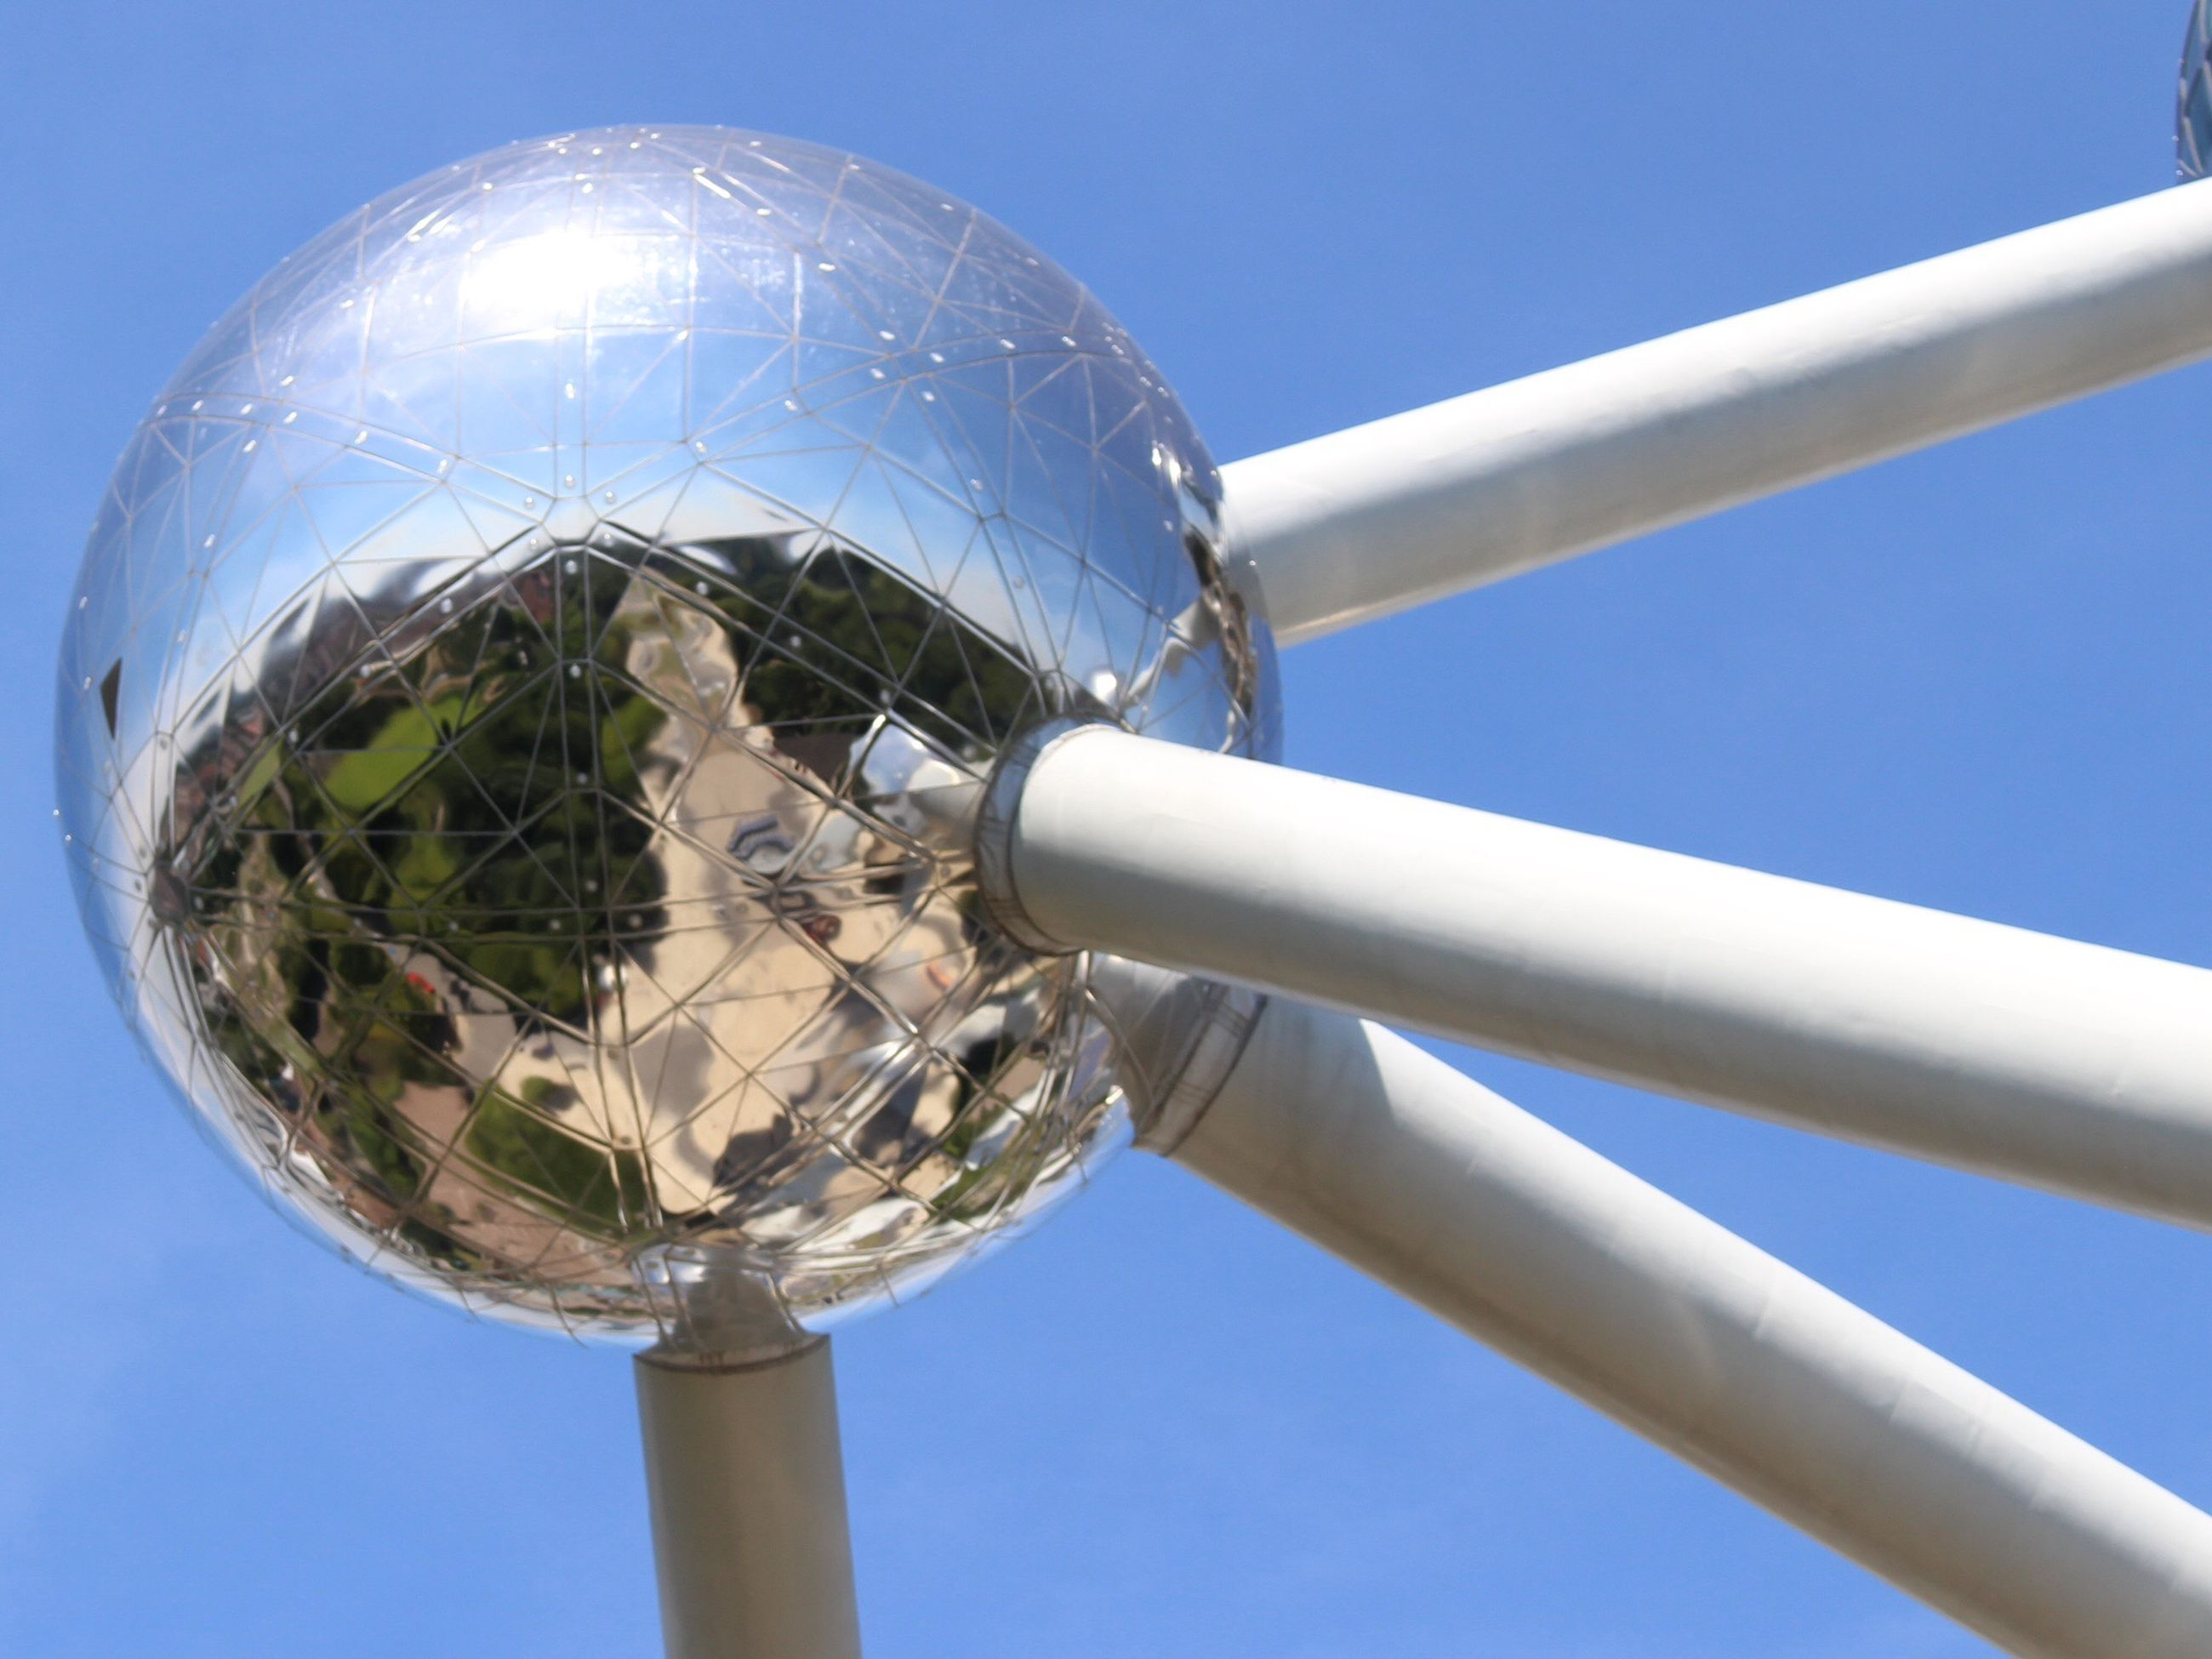 low angle view, blue, clear sky, built structure, architecture, sphere, close-up, sky, glass - material, street light, metal, day, no people, lighting equipment, outdoors, transparent, building exterior, sunlight, tower, copy space